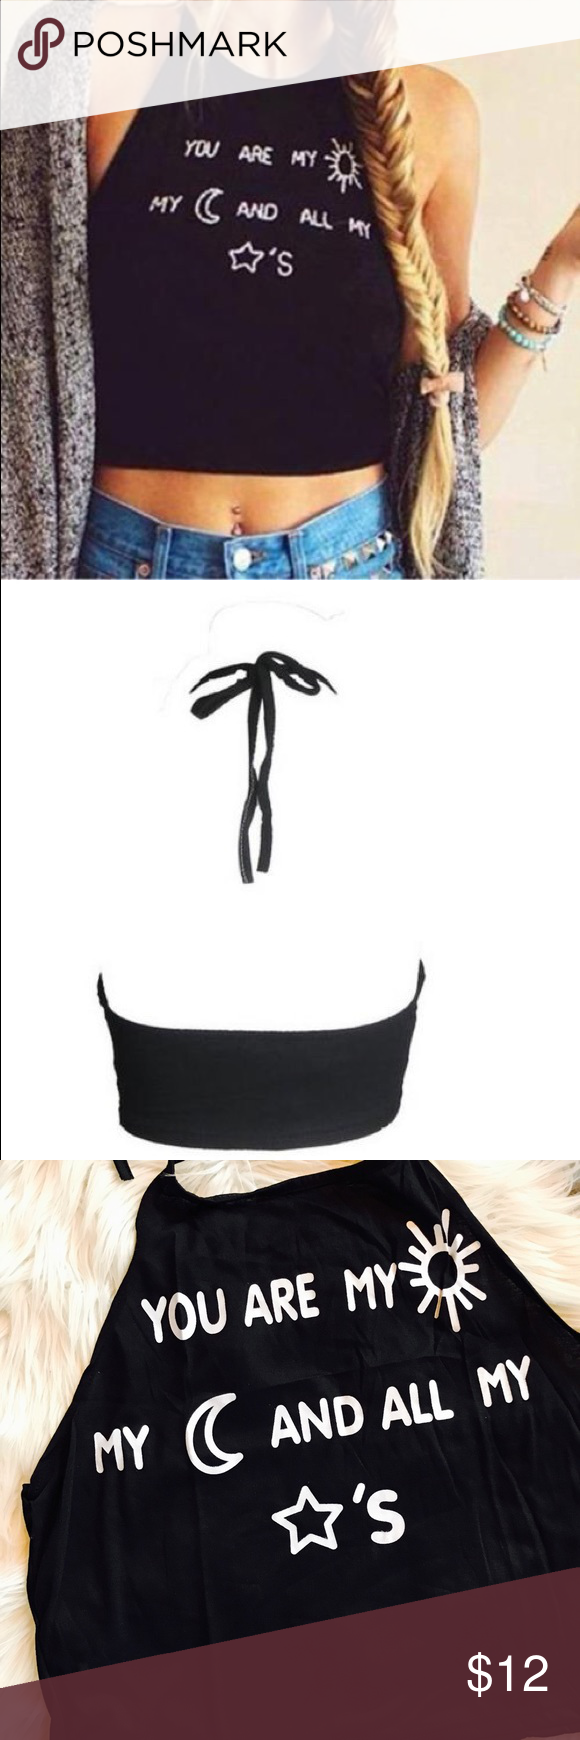 """NWOT Backless Crop Black Halter Top Sun Moon Stars Funky and fun lightweight black top.  Actual garment pictured in last 2 photos.  Tie string neck.  Cotton blend.  No size label so check measurements before buying.  Pit to pit laying flat 18.75"""". Length of side 9"""".   Length from top edge of front (not total length because tie is adjustable) 17"""". Tops Camisoles"""